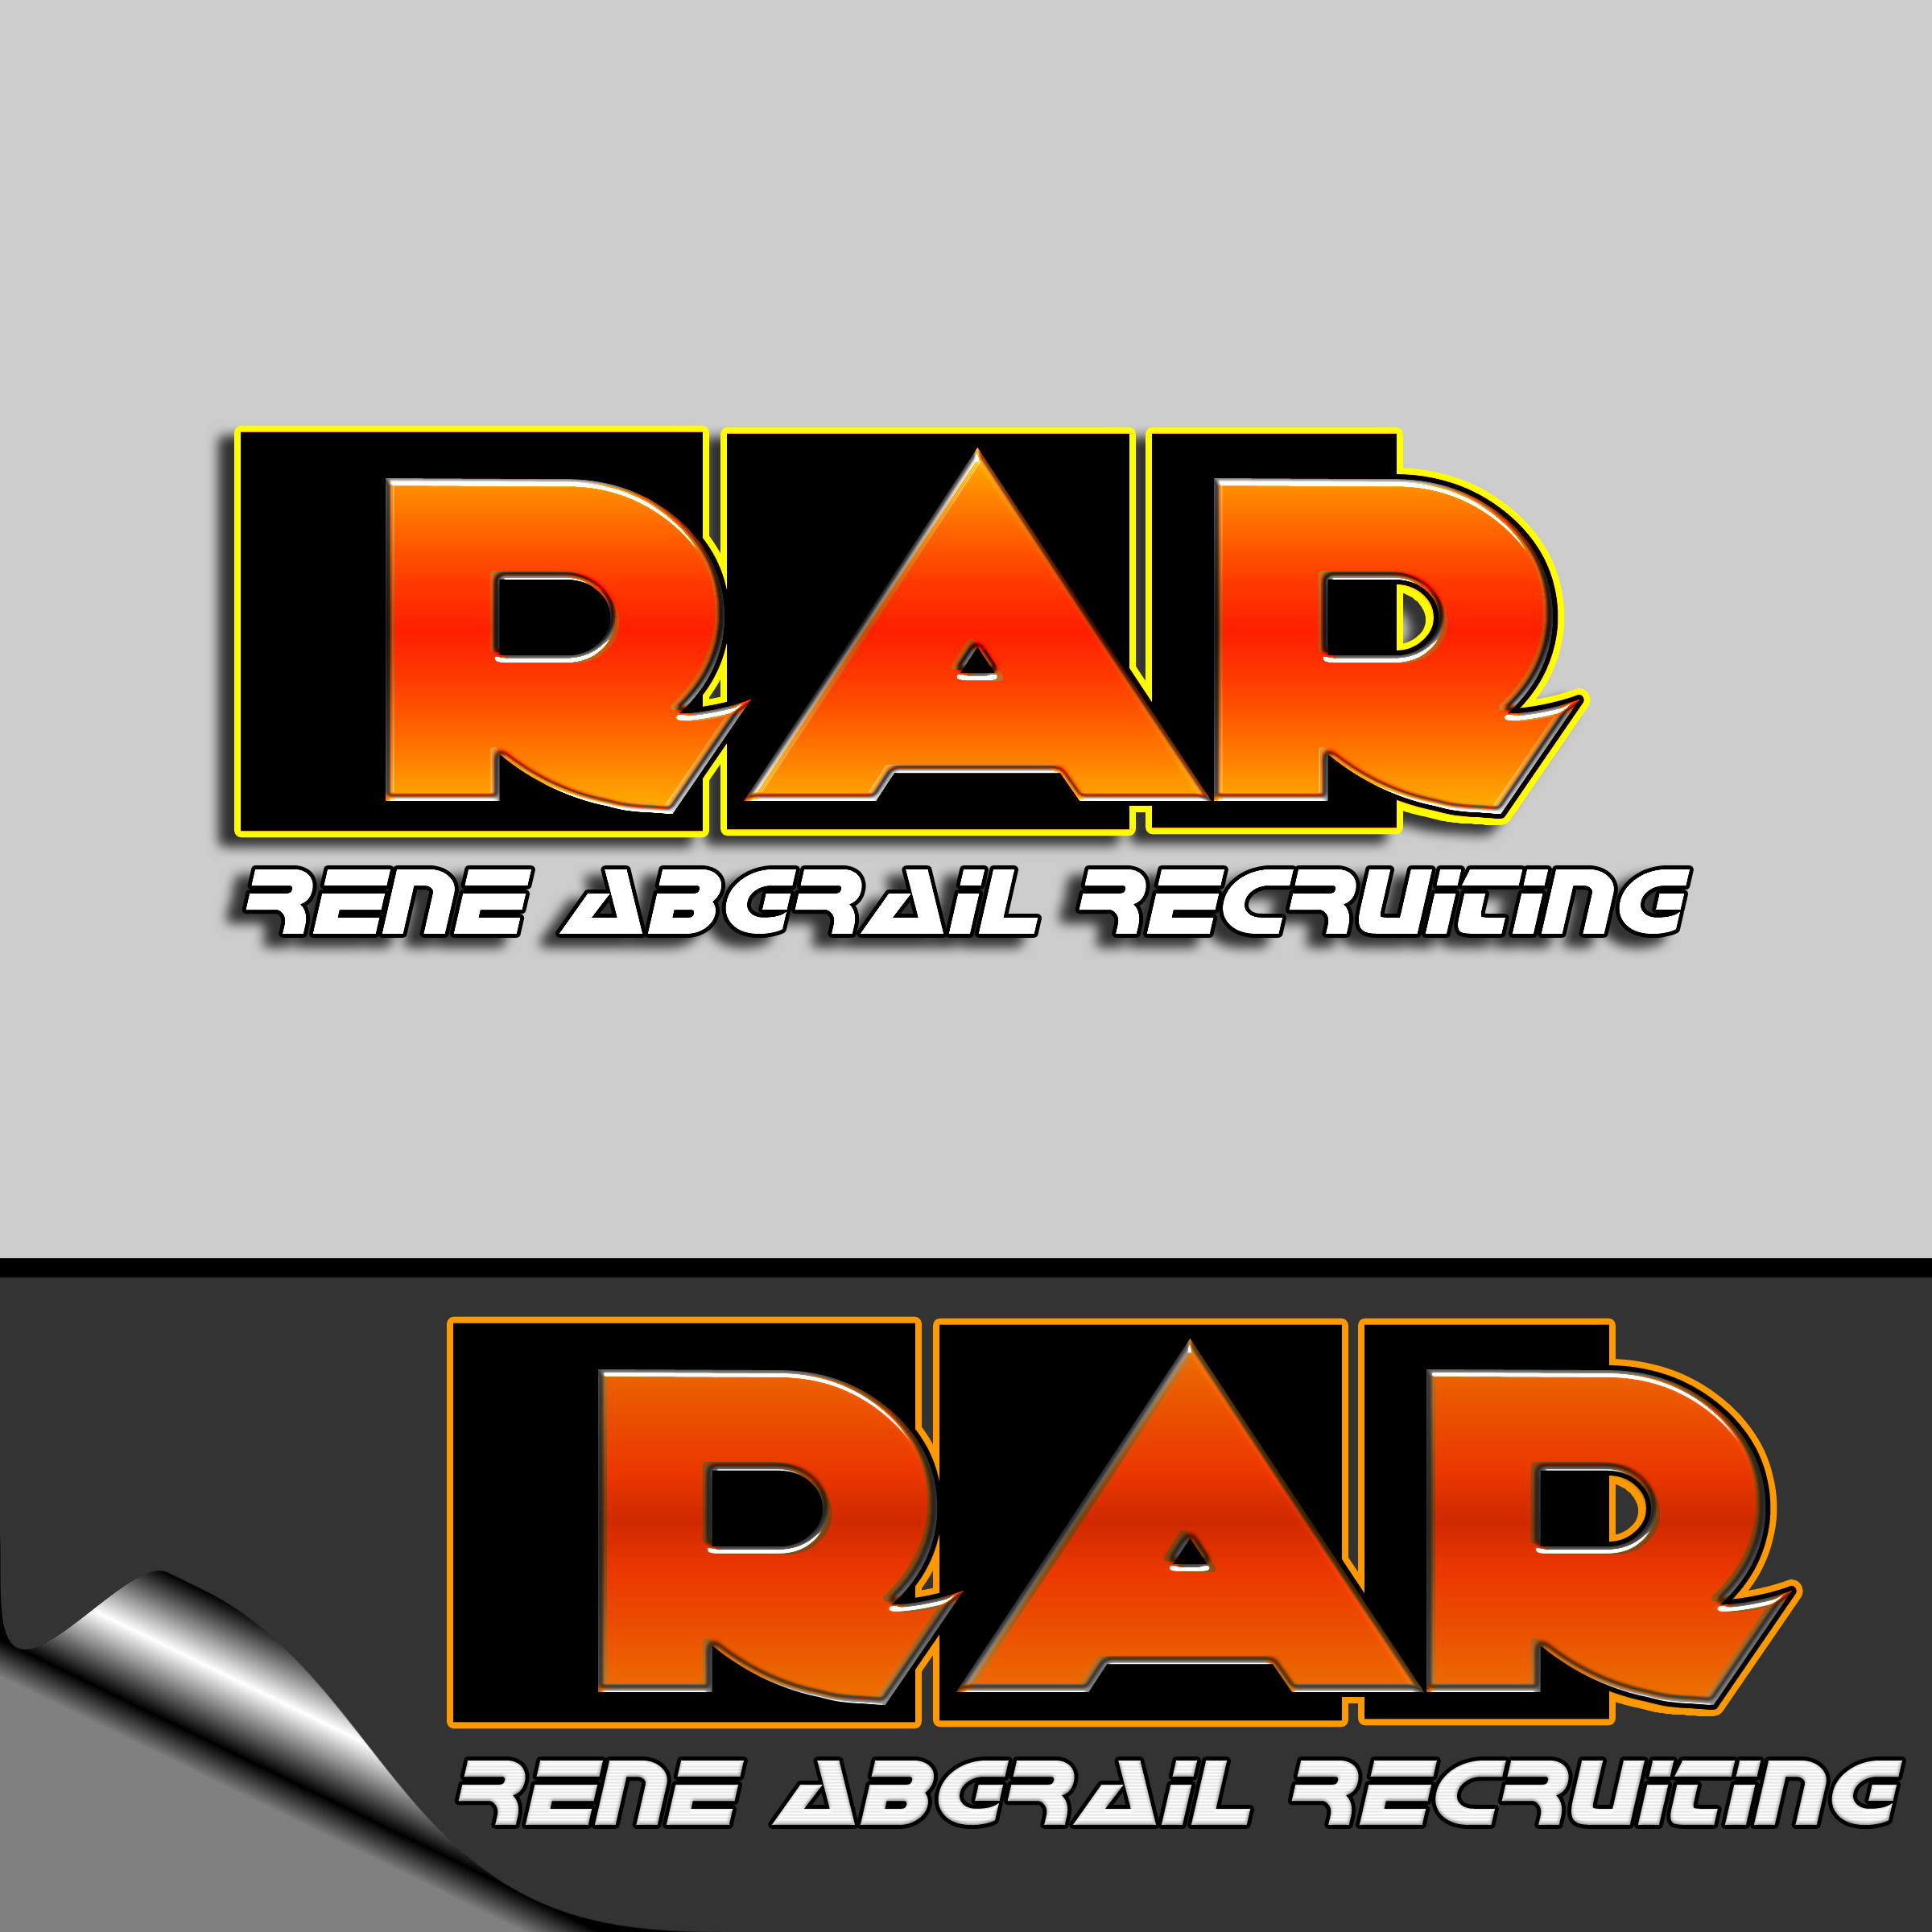 Logo Design by MITUCA ANDREI - Entry No. 7 in the Logo Design Contest Artistic Logo Design for René Abgrall Recruiting.